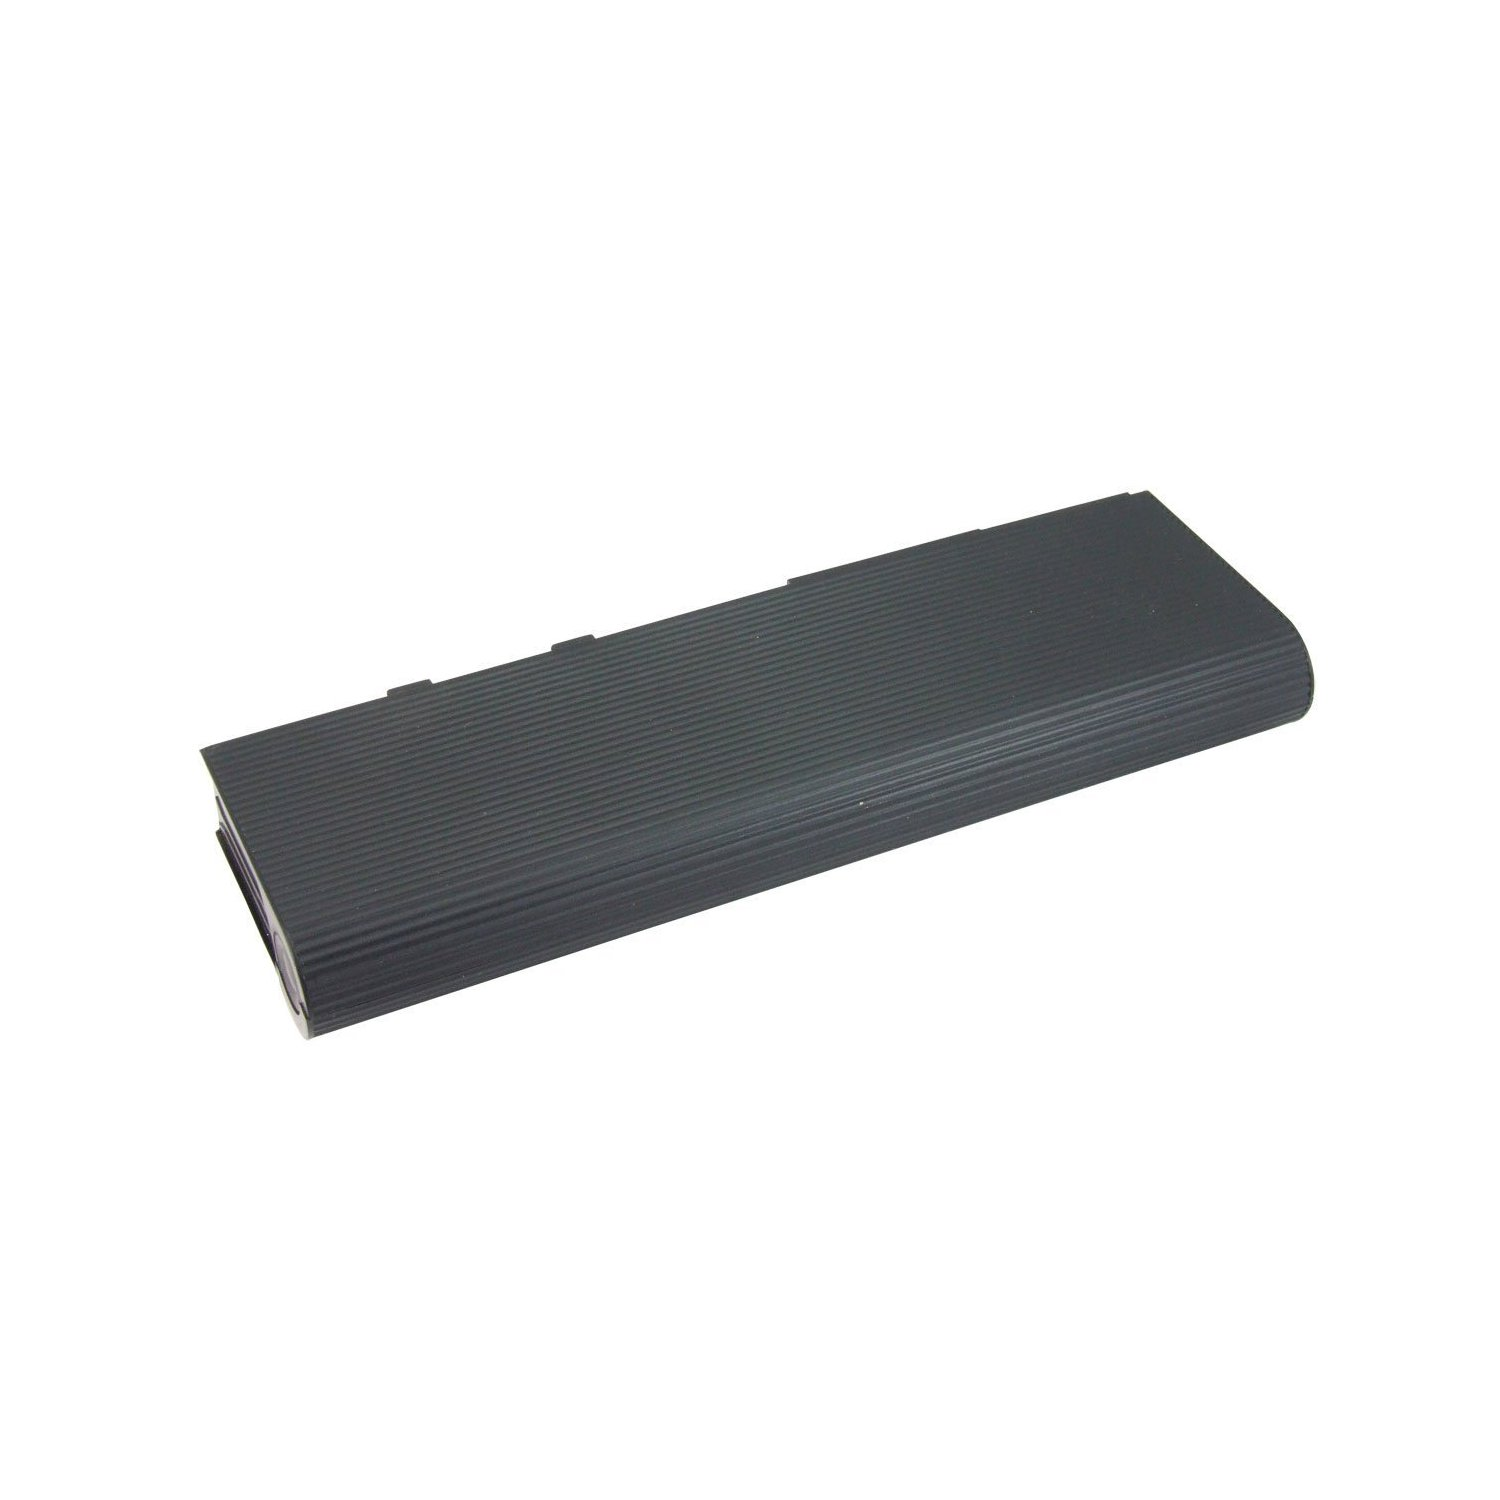 Acer BTP-AMJ1-9CELL: Laptop Battery 9-cell for ACER BTP-AMJ1